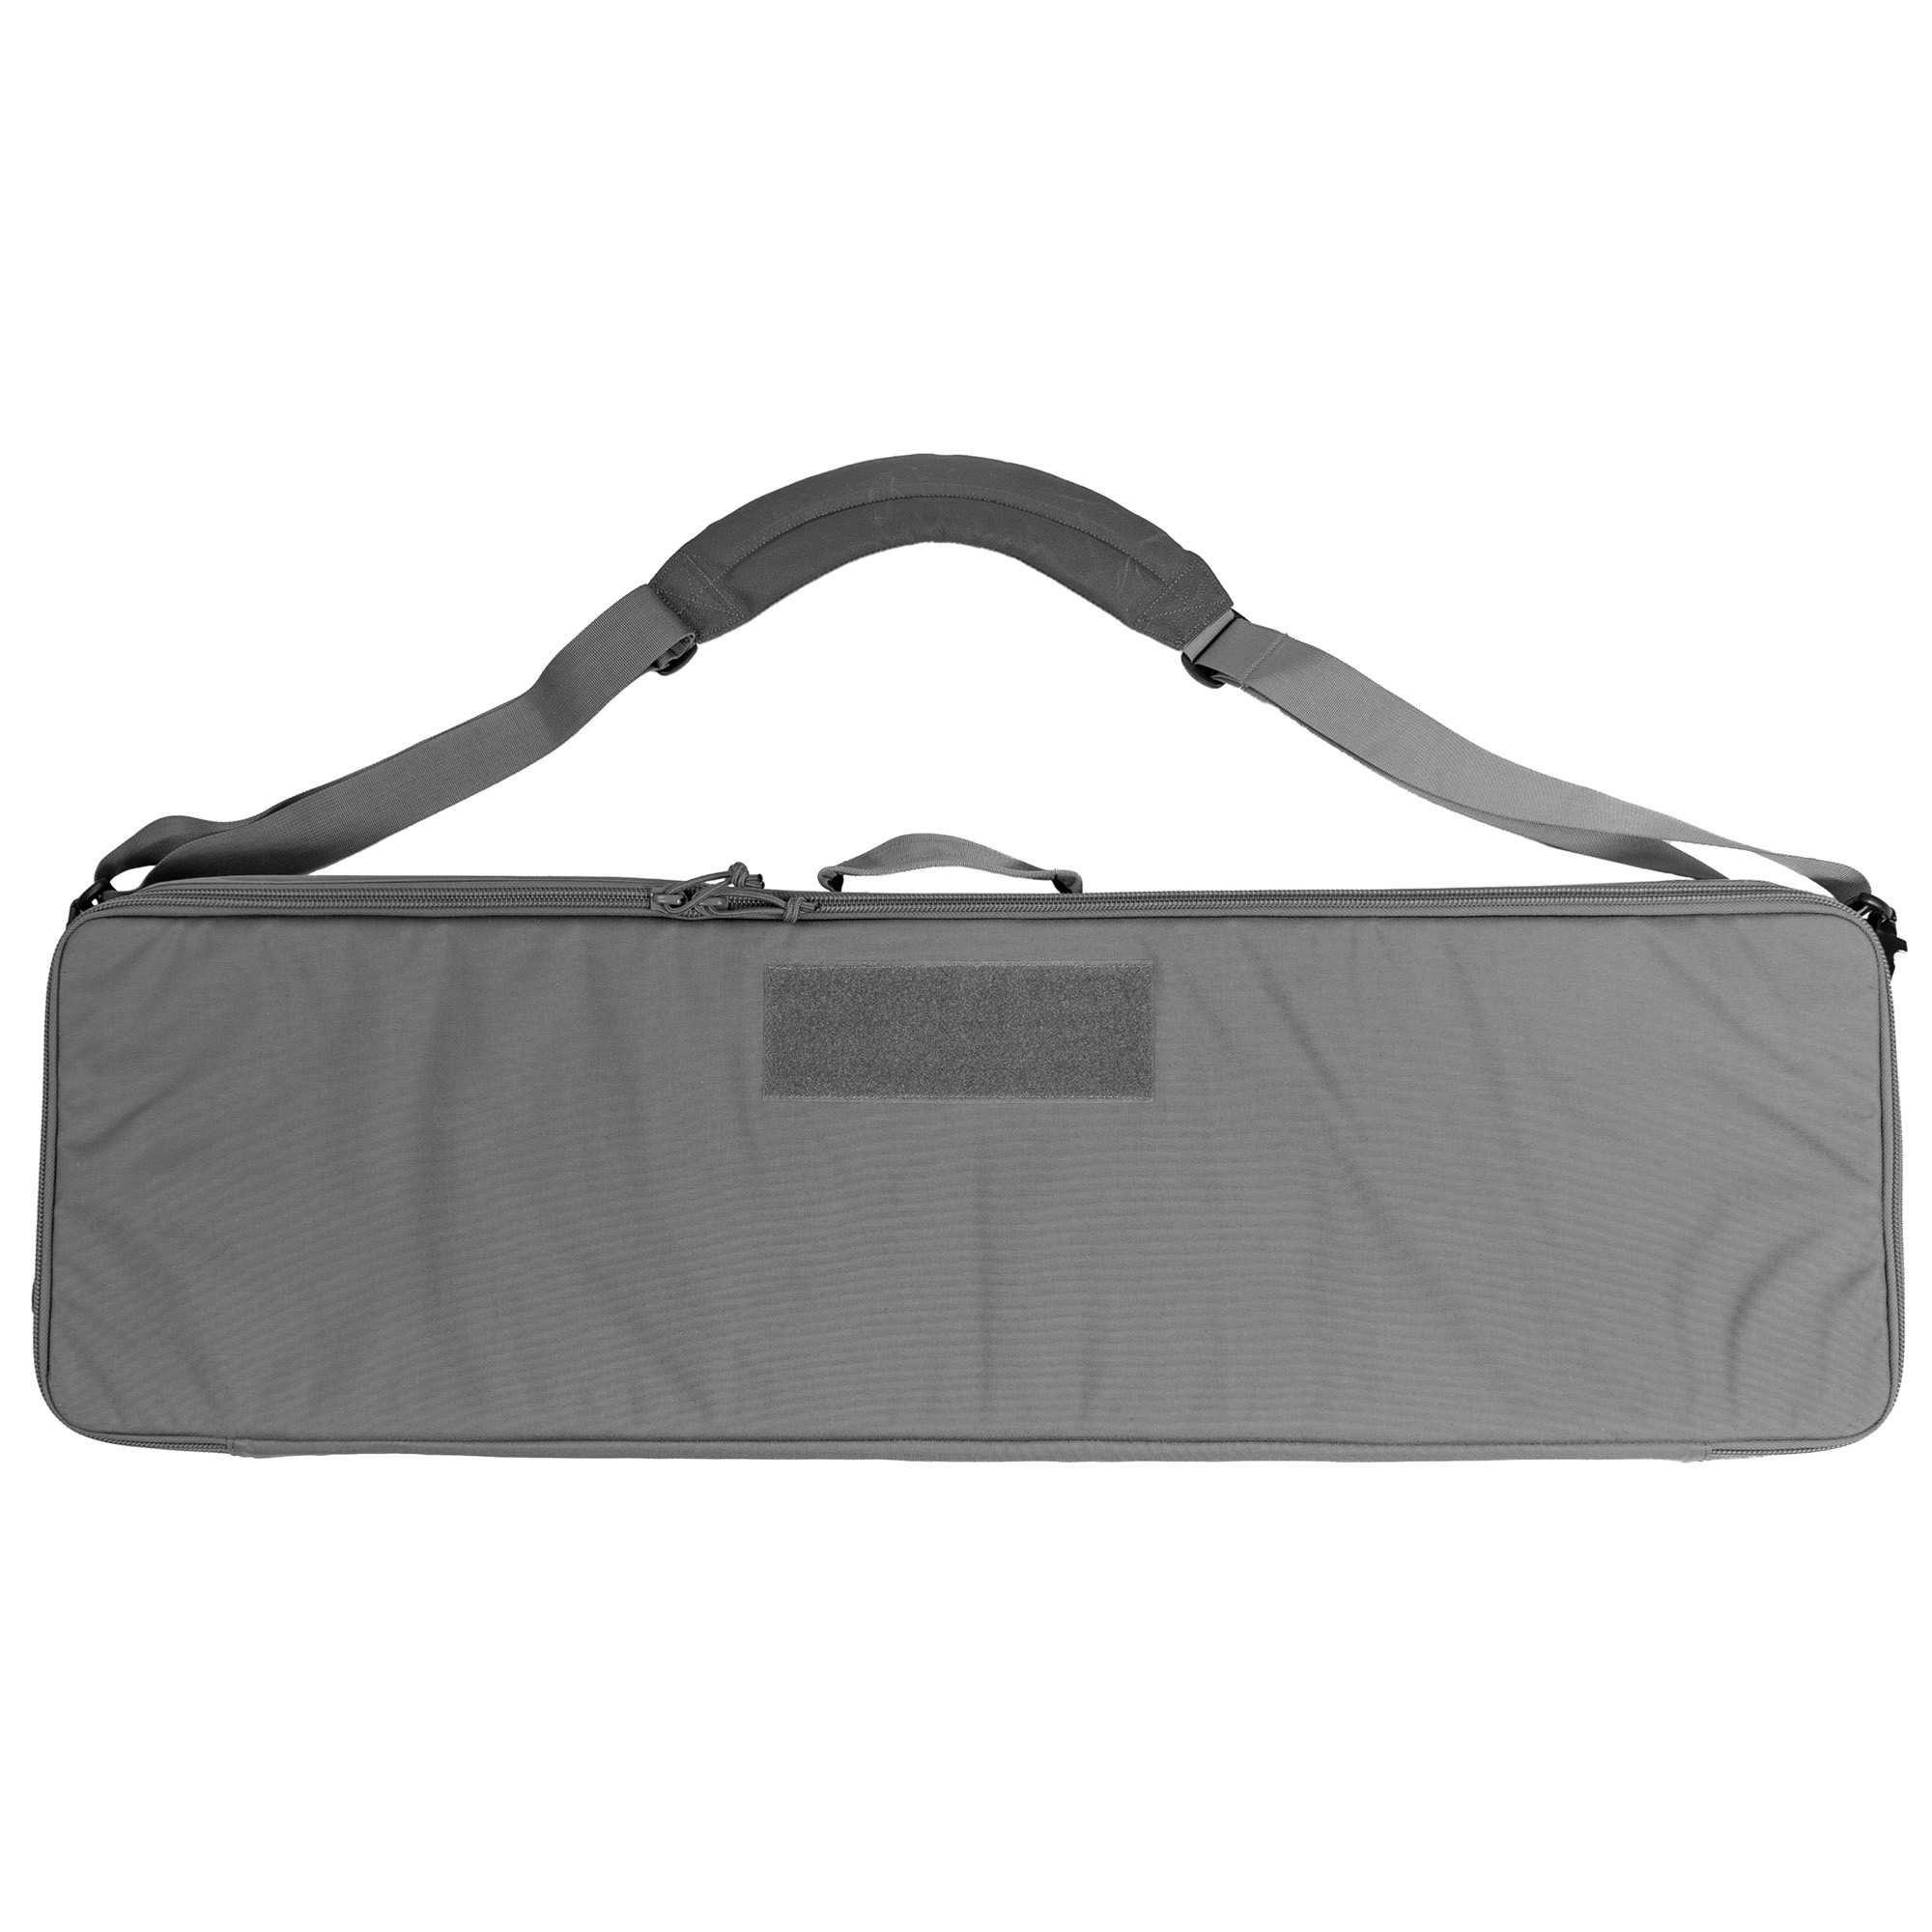 """The Grey Ghost Gear rifle case comes with solid construction"""" endless configurations"""" and is a looker to boot. There are 2 attachment points on either end of the bag for attaching the carrying strap that is included. The front of the bag features a 8X3 inch loop field to attach patches. The inside if the lid has two zippered mesh pockets to store loose items"""" cleaning kit"""" mags"""" ECT. Inside of the body of the bag is covered in loop. this allows the three provided attachment panels to be used in an infinite number of placements to hold any 38 inch or shorter rifle in place or to store a longer rifle in 2 pieces. There are two additional flat tie downs to secure a smaller item in the bag"""" such as a hand gun or spotting scope."""